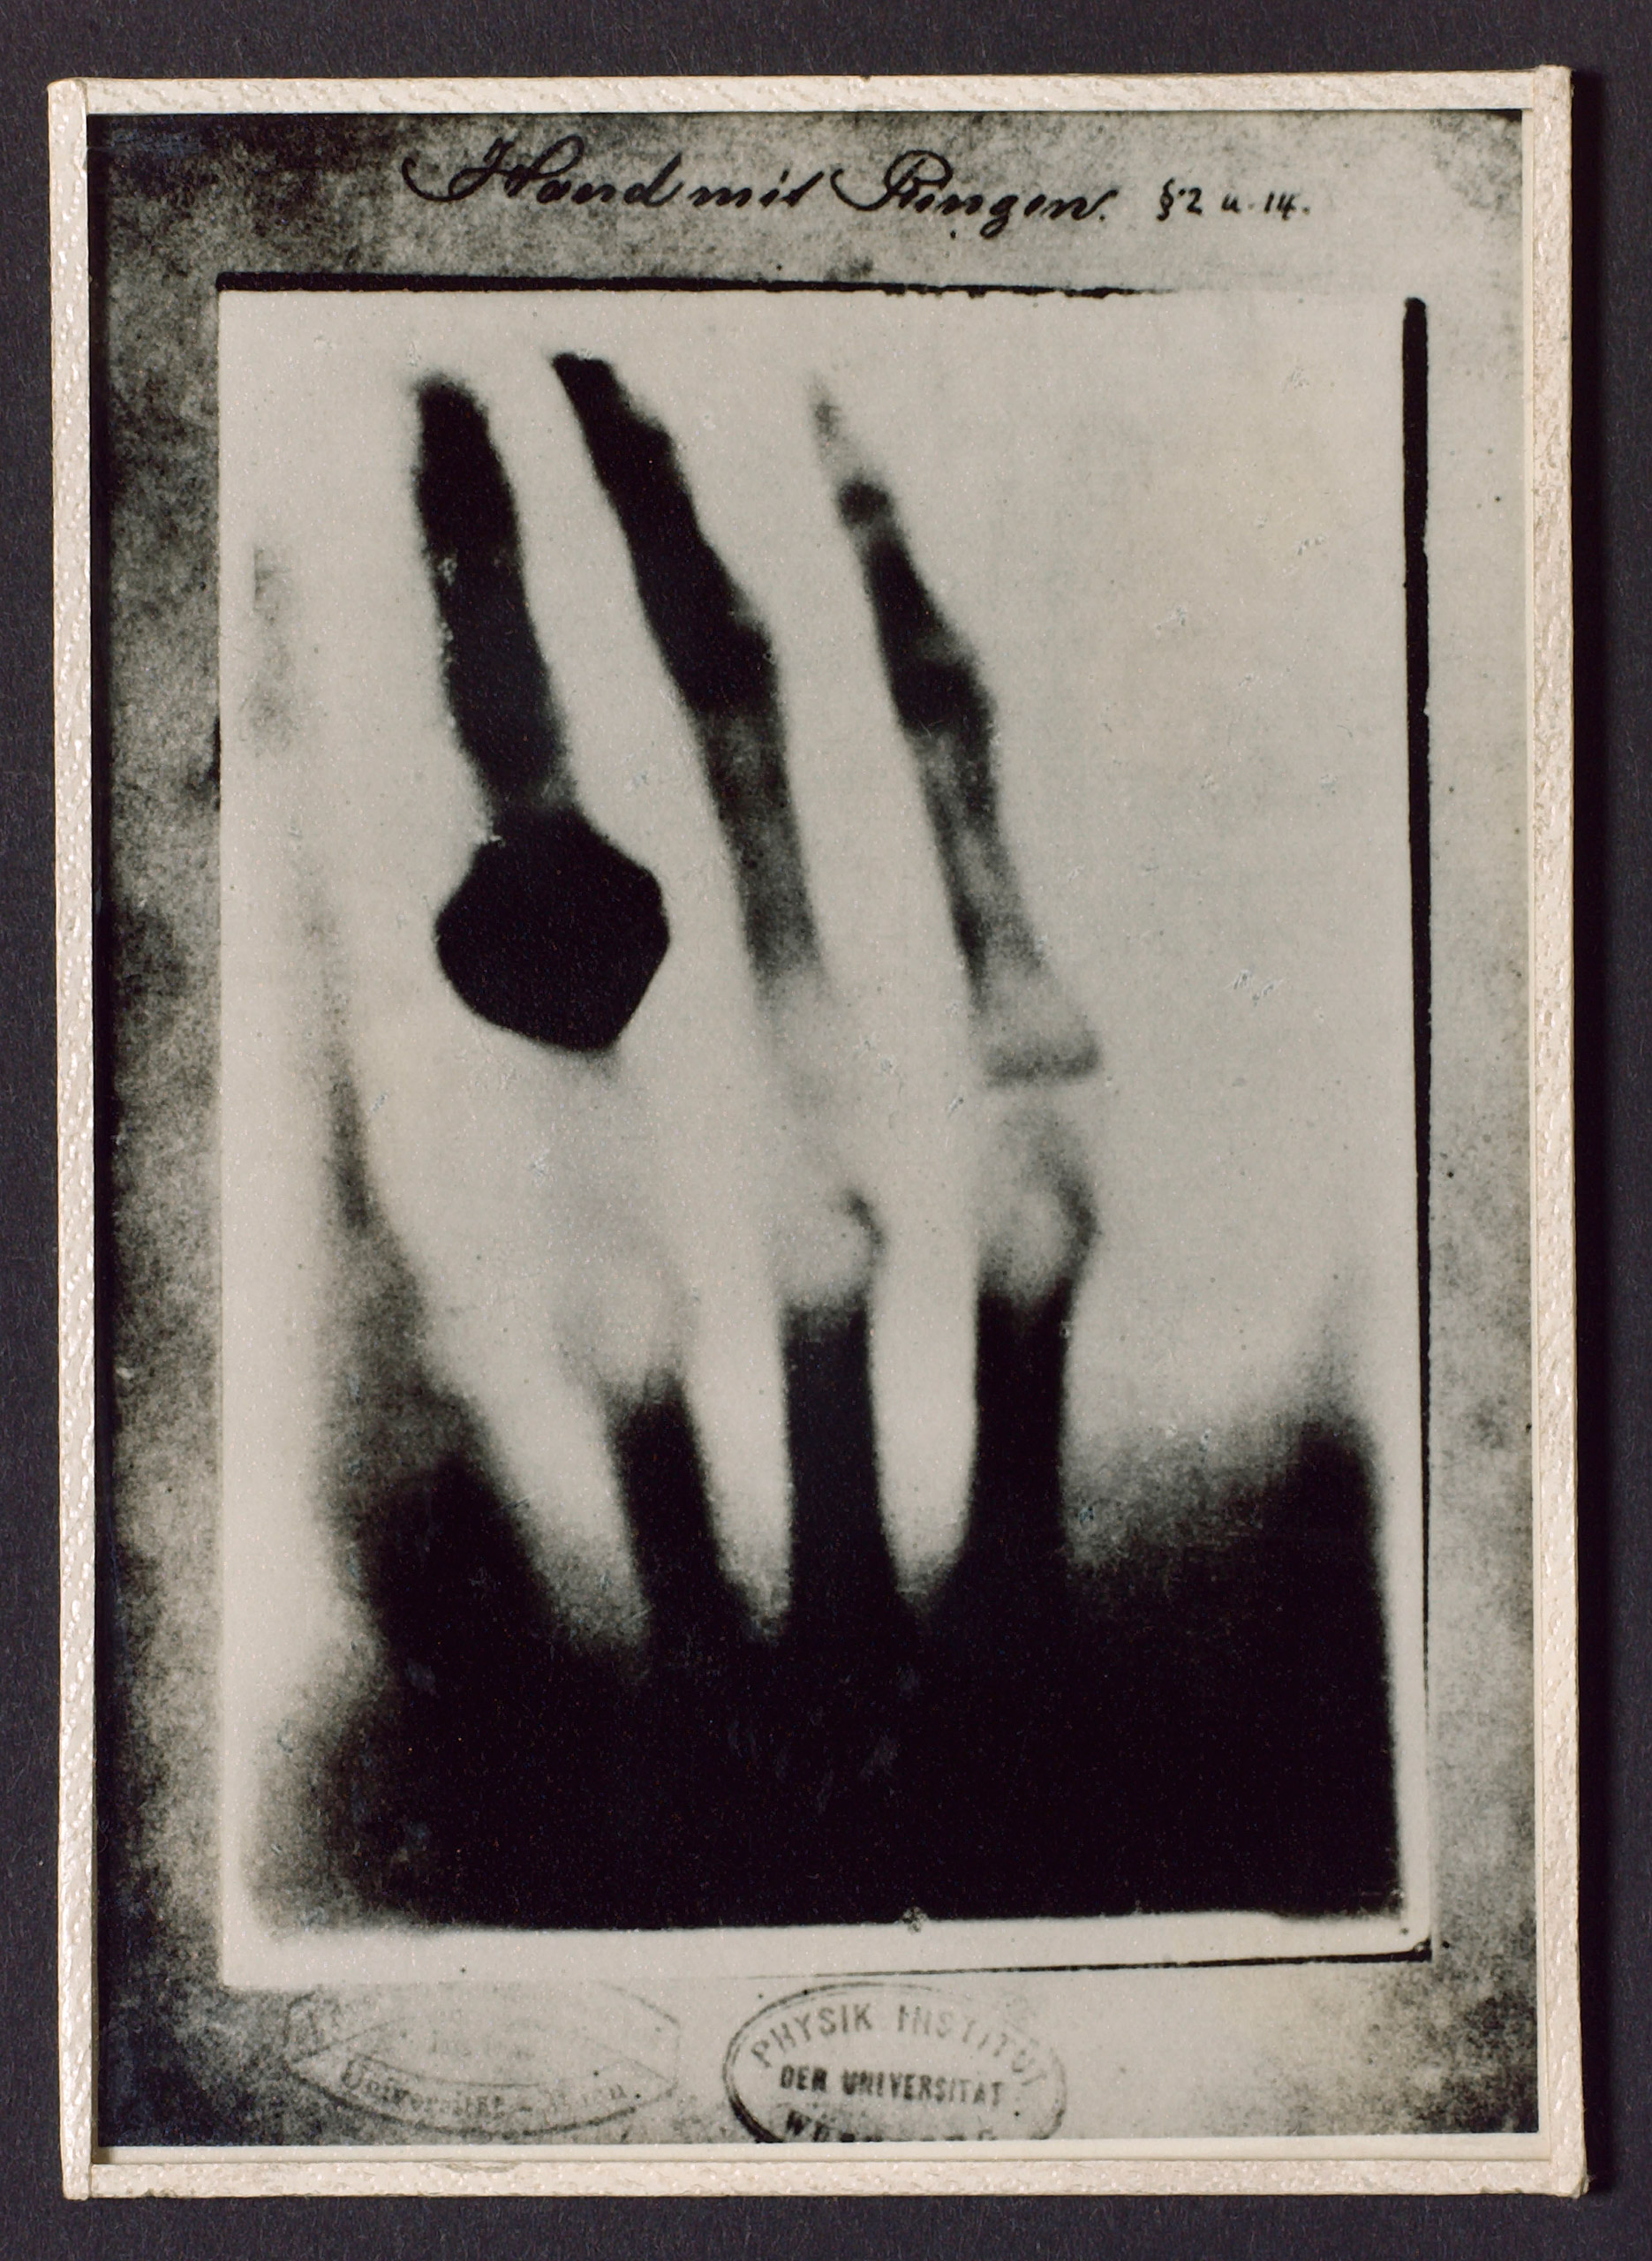 X-ray photograph taken by Wilhelm Roentgen of his wife's hand in December 1895.